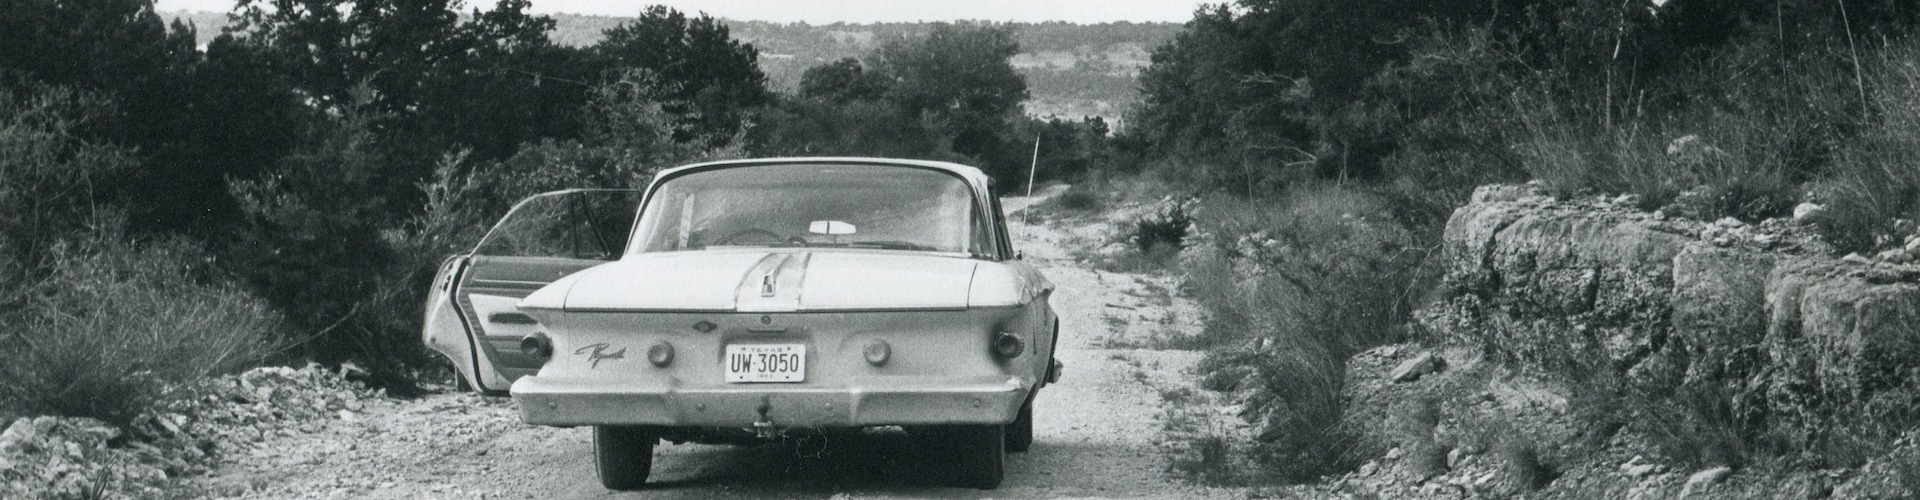 A rural Travis County road in the 1960s